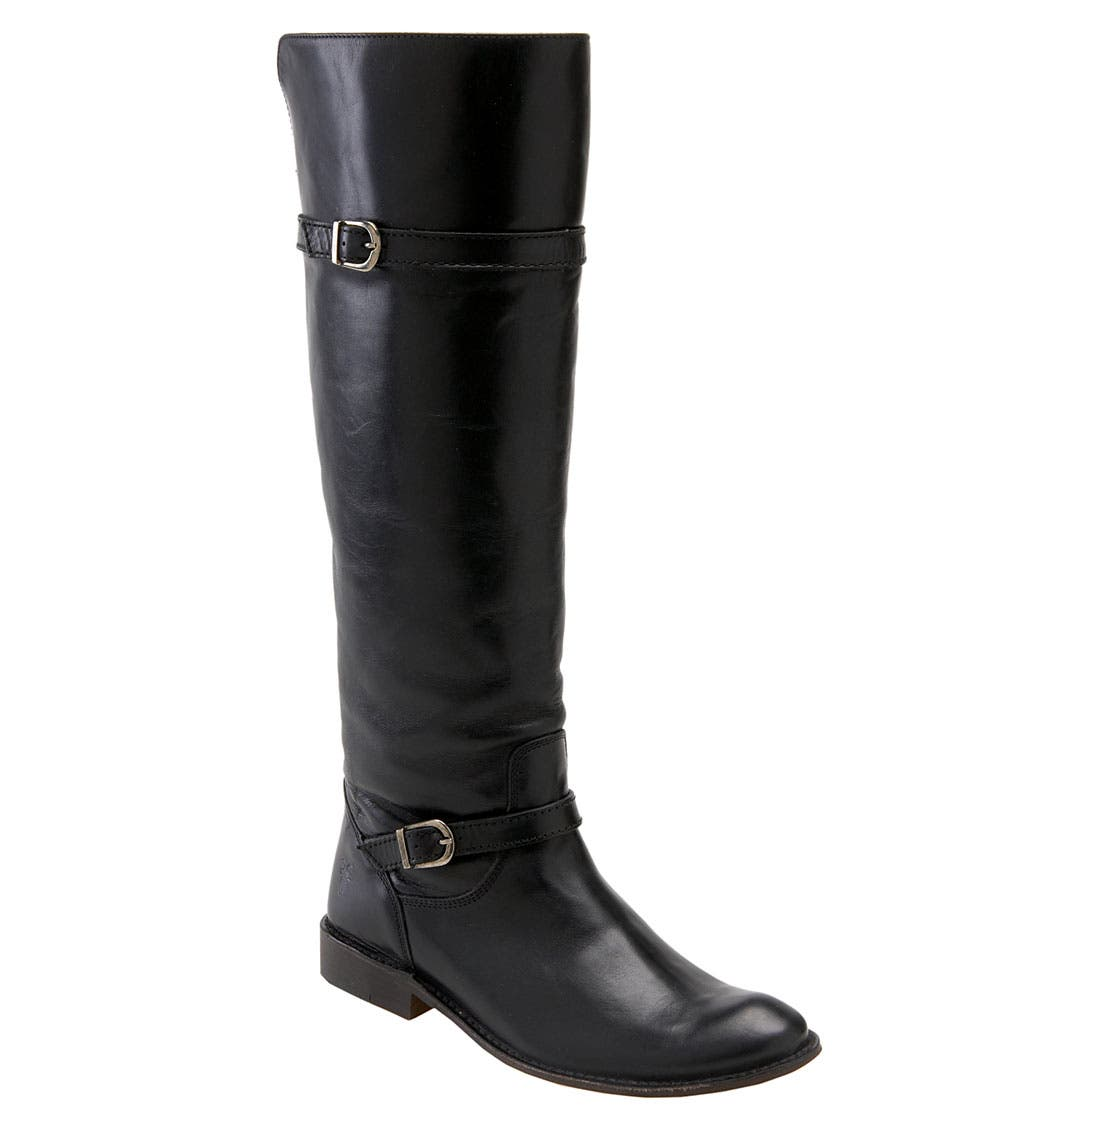 Alternate Image 1 Selected - Frye 'Shirley' Riding Boot